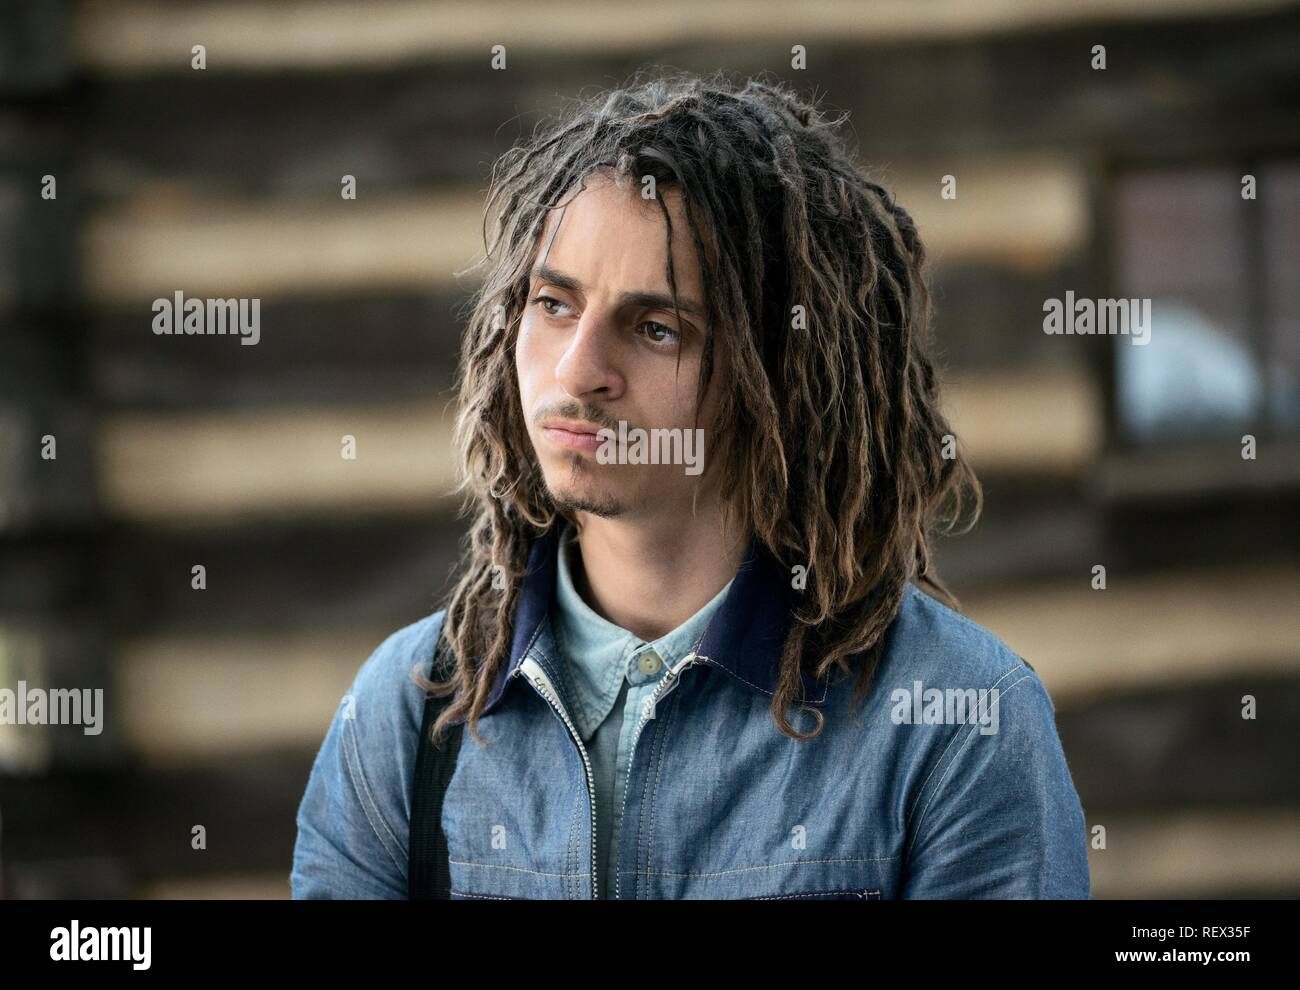 Moises Stock Photos Moises Stock Images Alamy